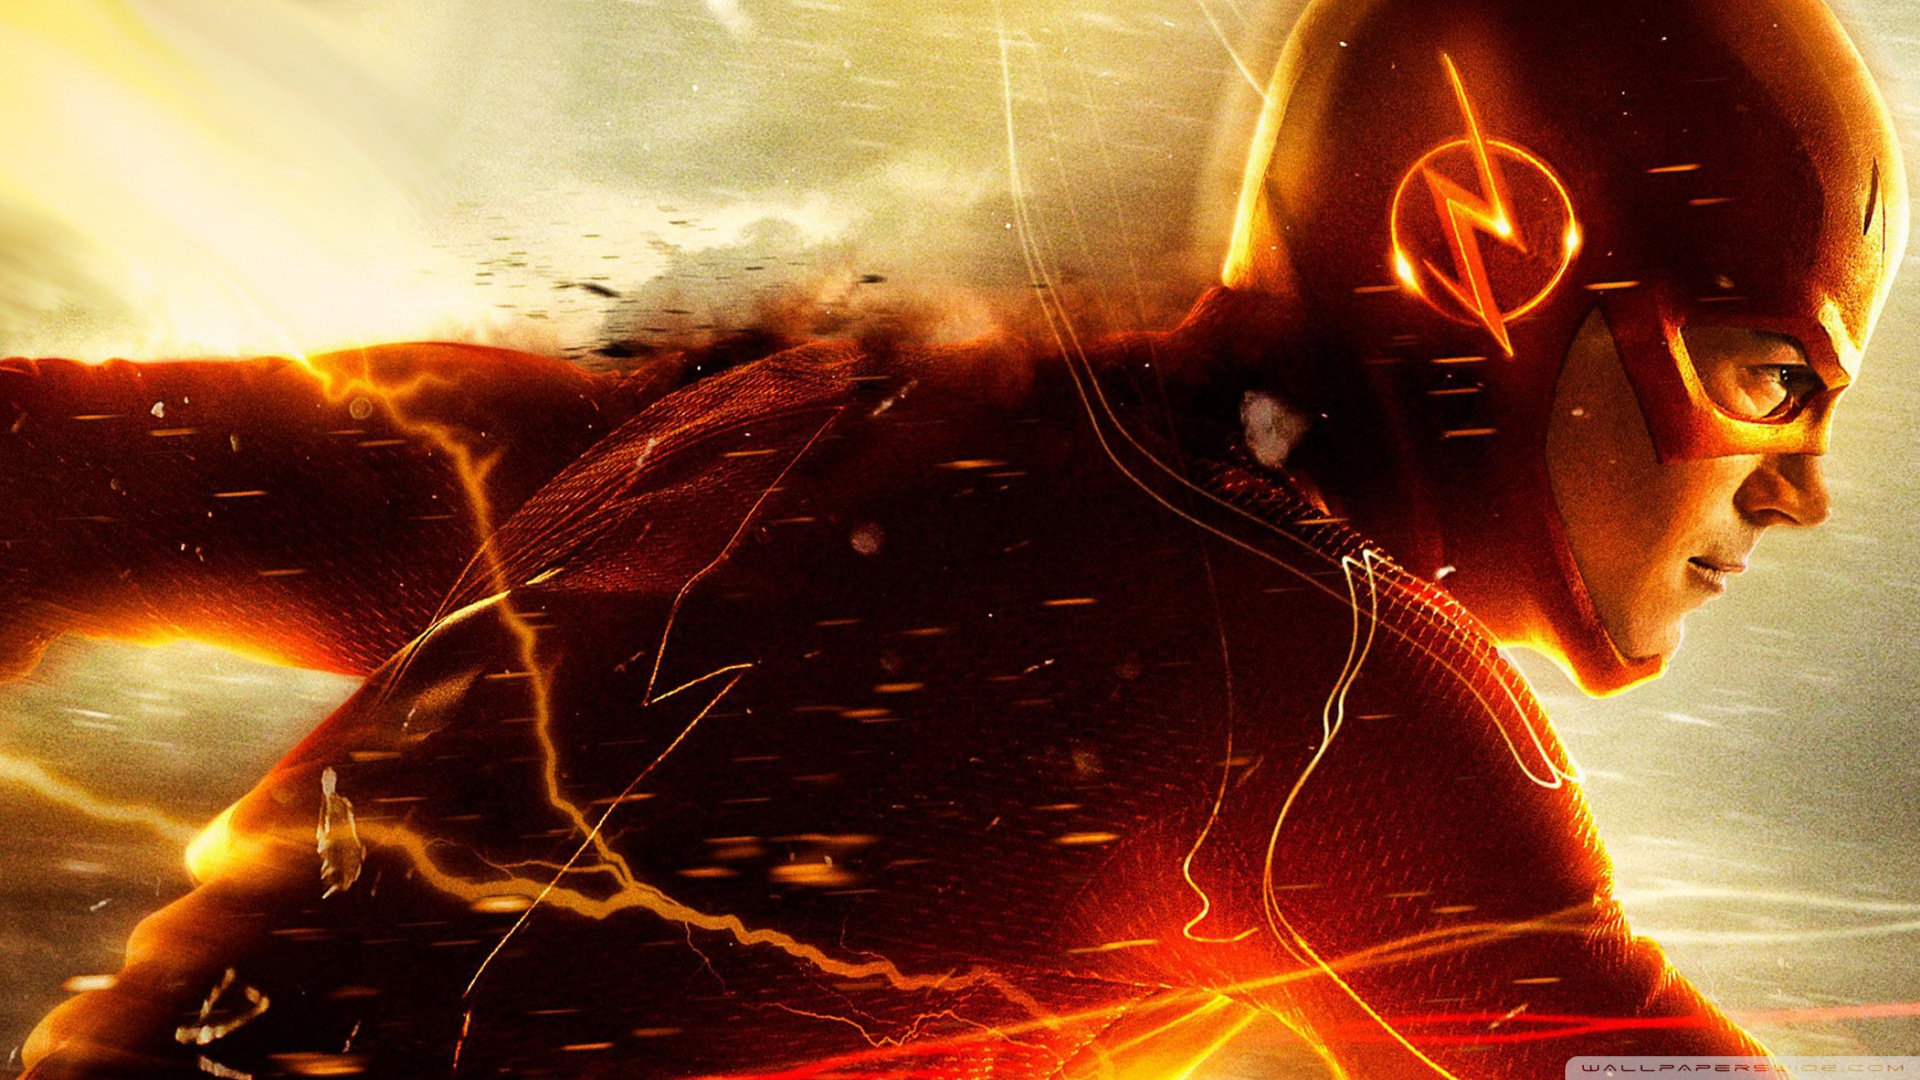 The Flash Concept Art Alternate Reverse Flash Costume Designs 1920x1080